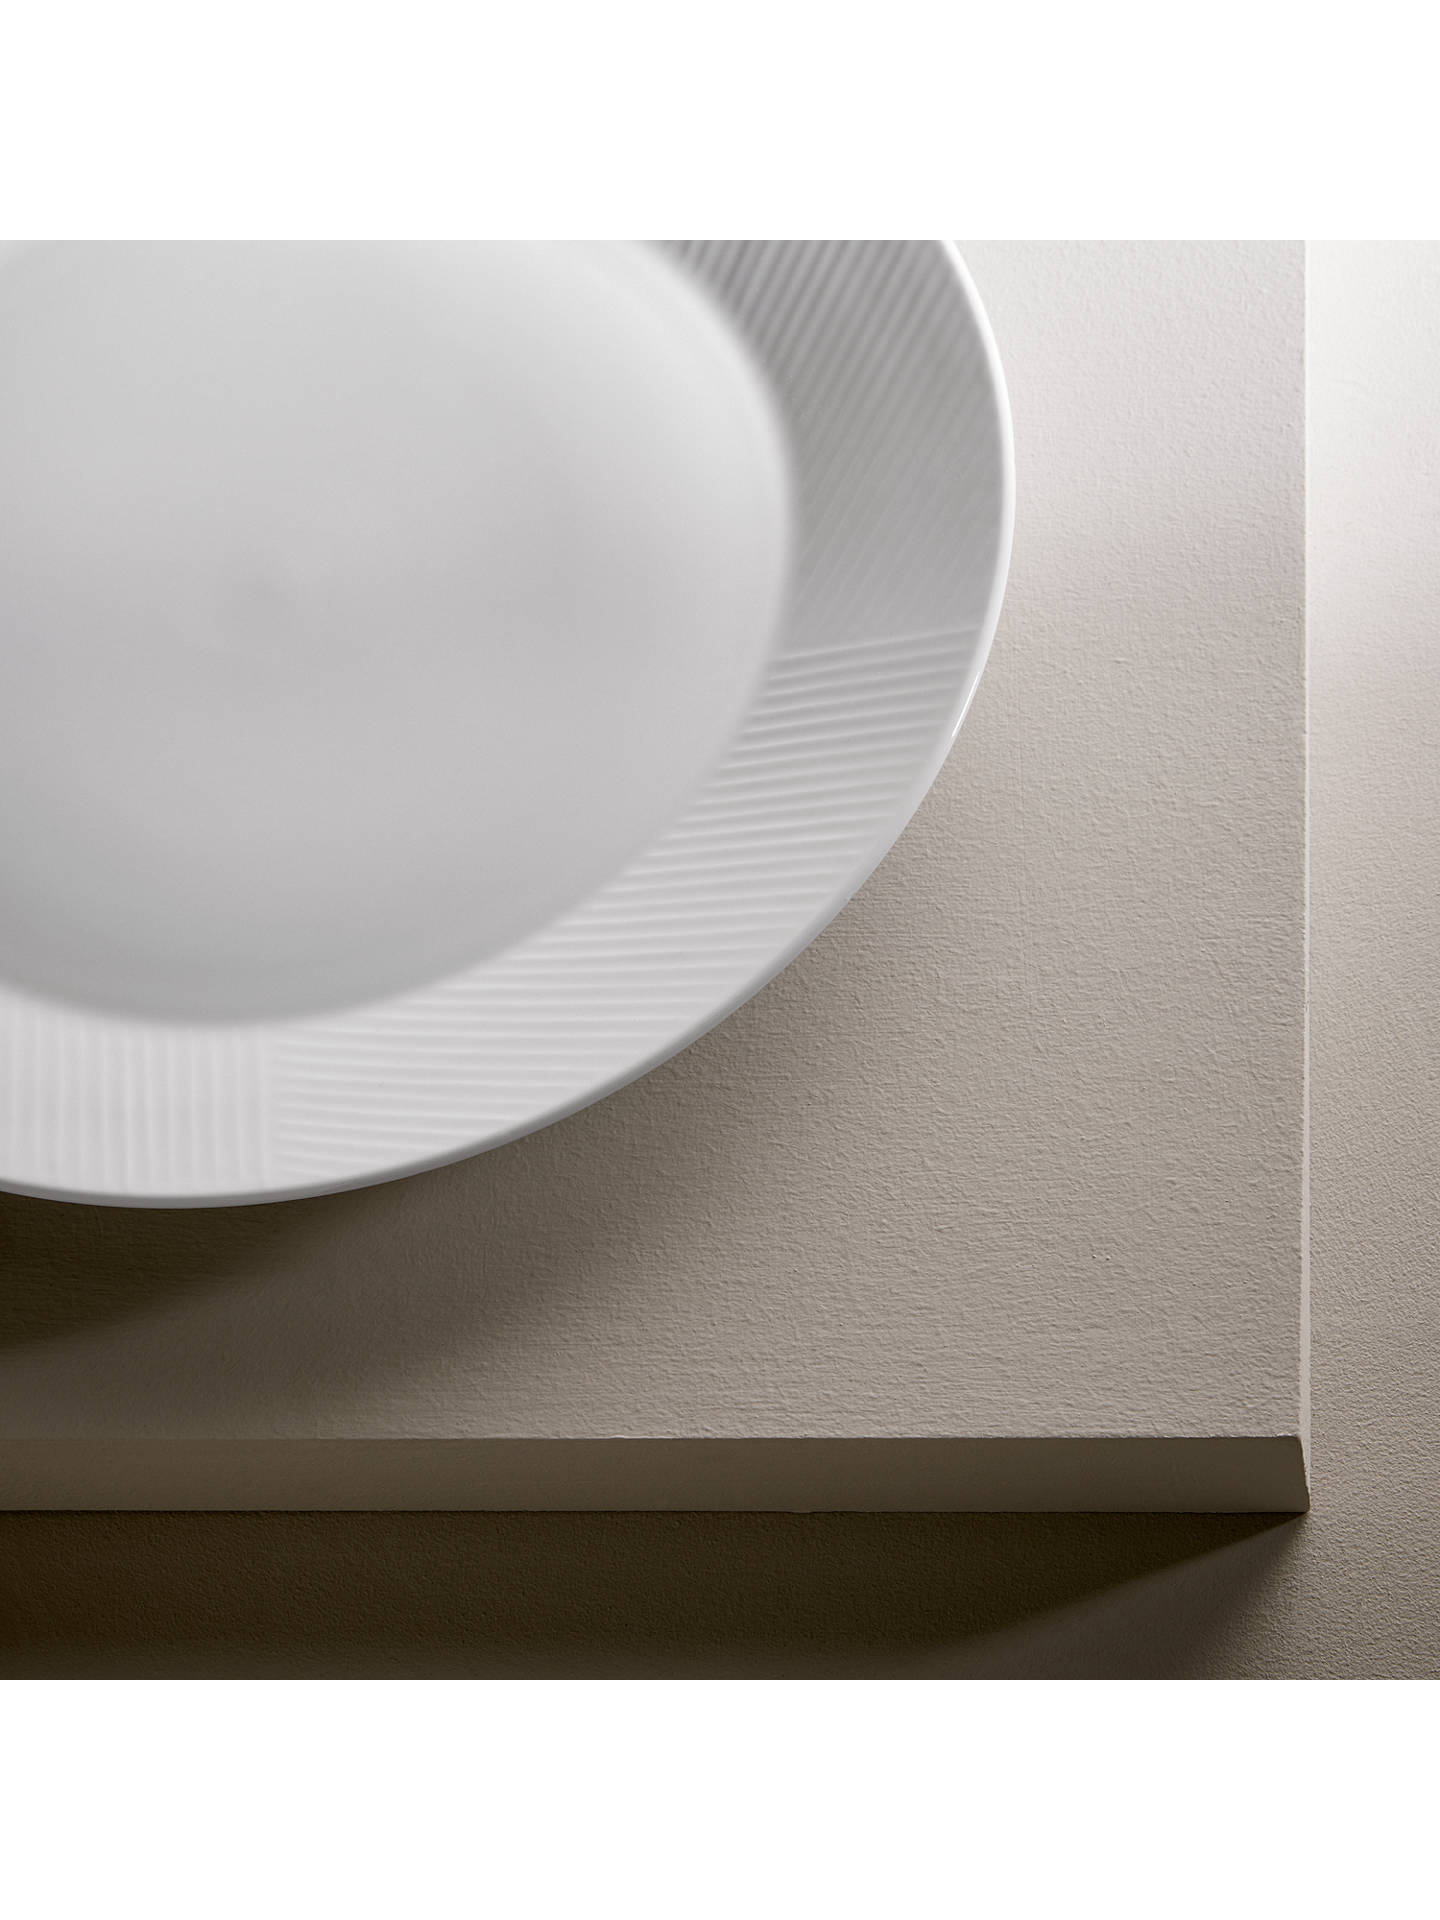 Buy Design Project by John Lewis No.098 Coupe Dinner Plate, 28cm, White Online at johnlewis.com